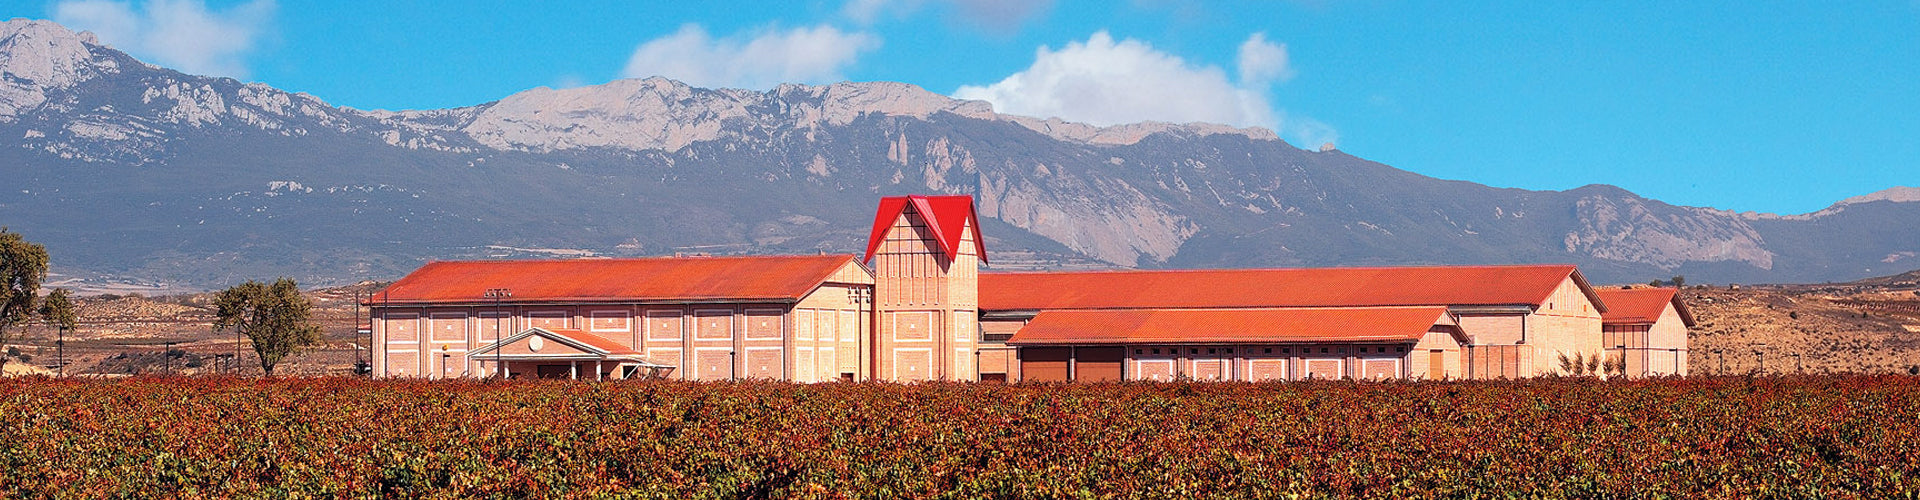 Finca Valpiedra Winery in the heart of the Vineyards